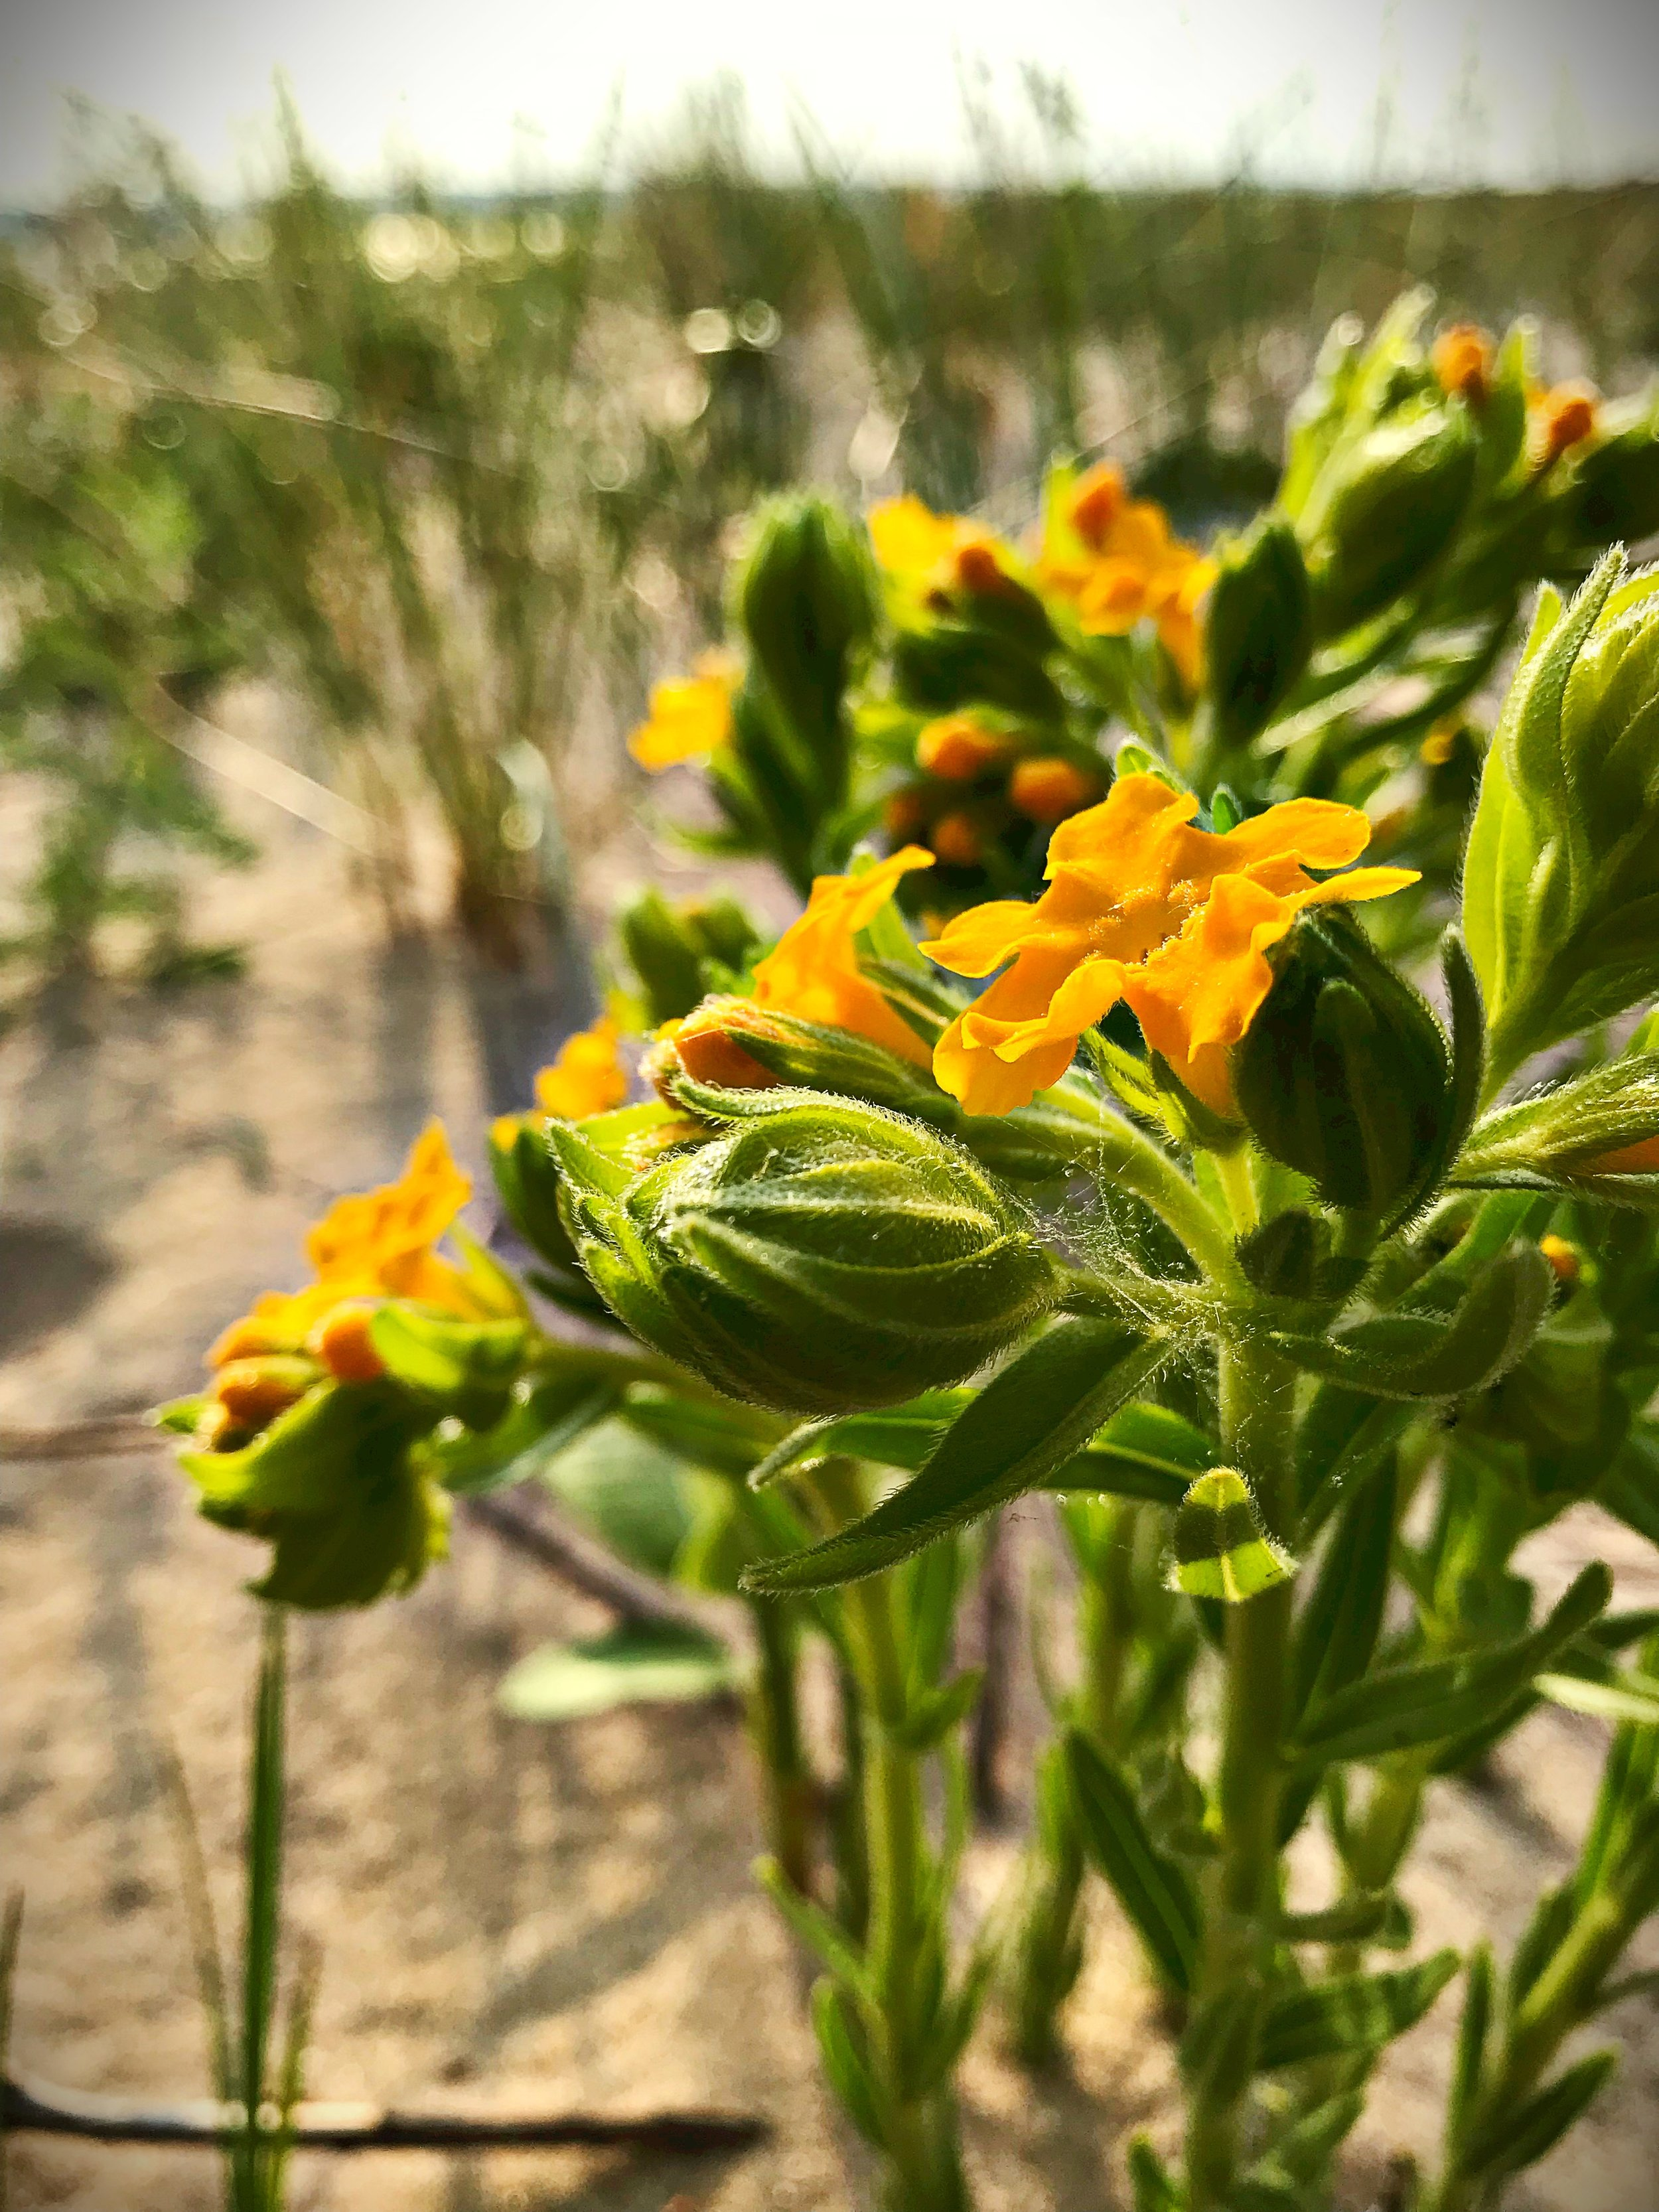 Hoary puccoon  (Lithospermum canescens  )  is a member of the Borage family  (Boraginaceae) .